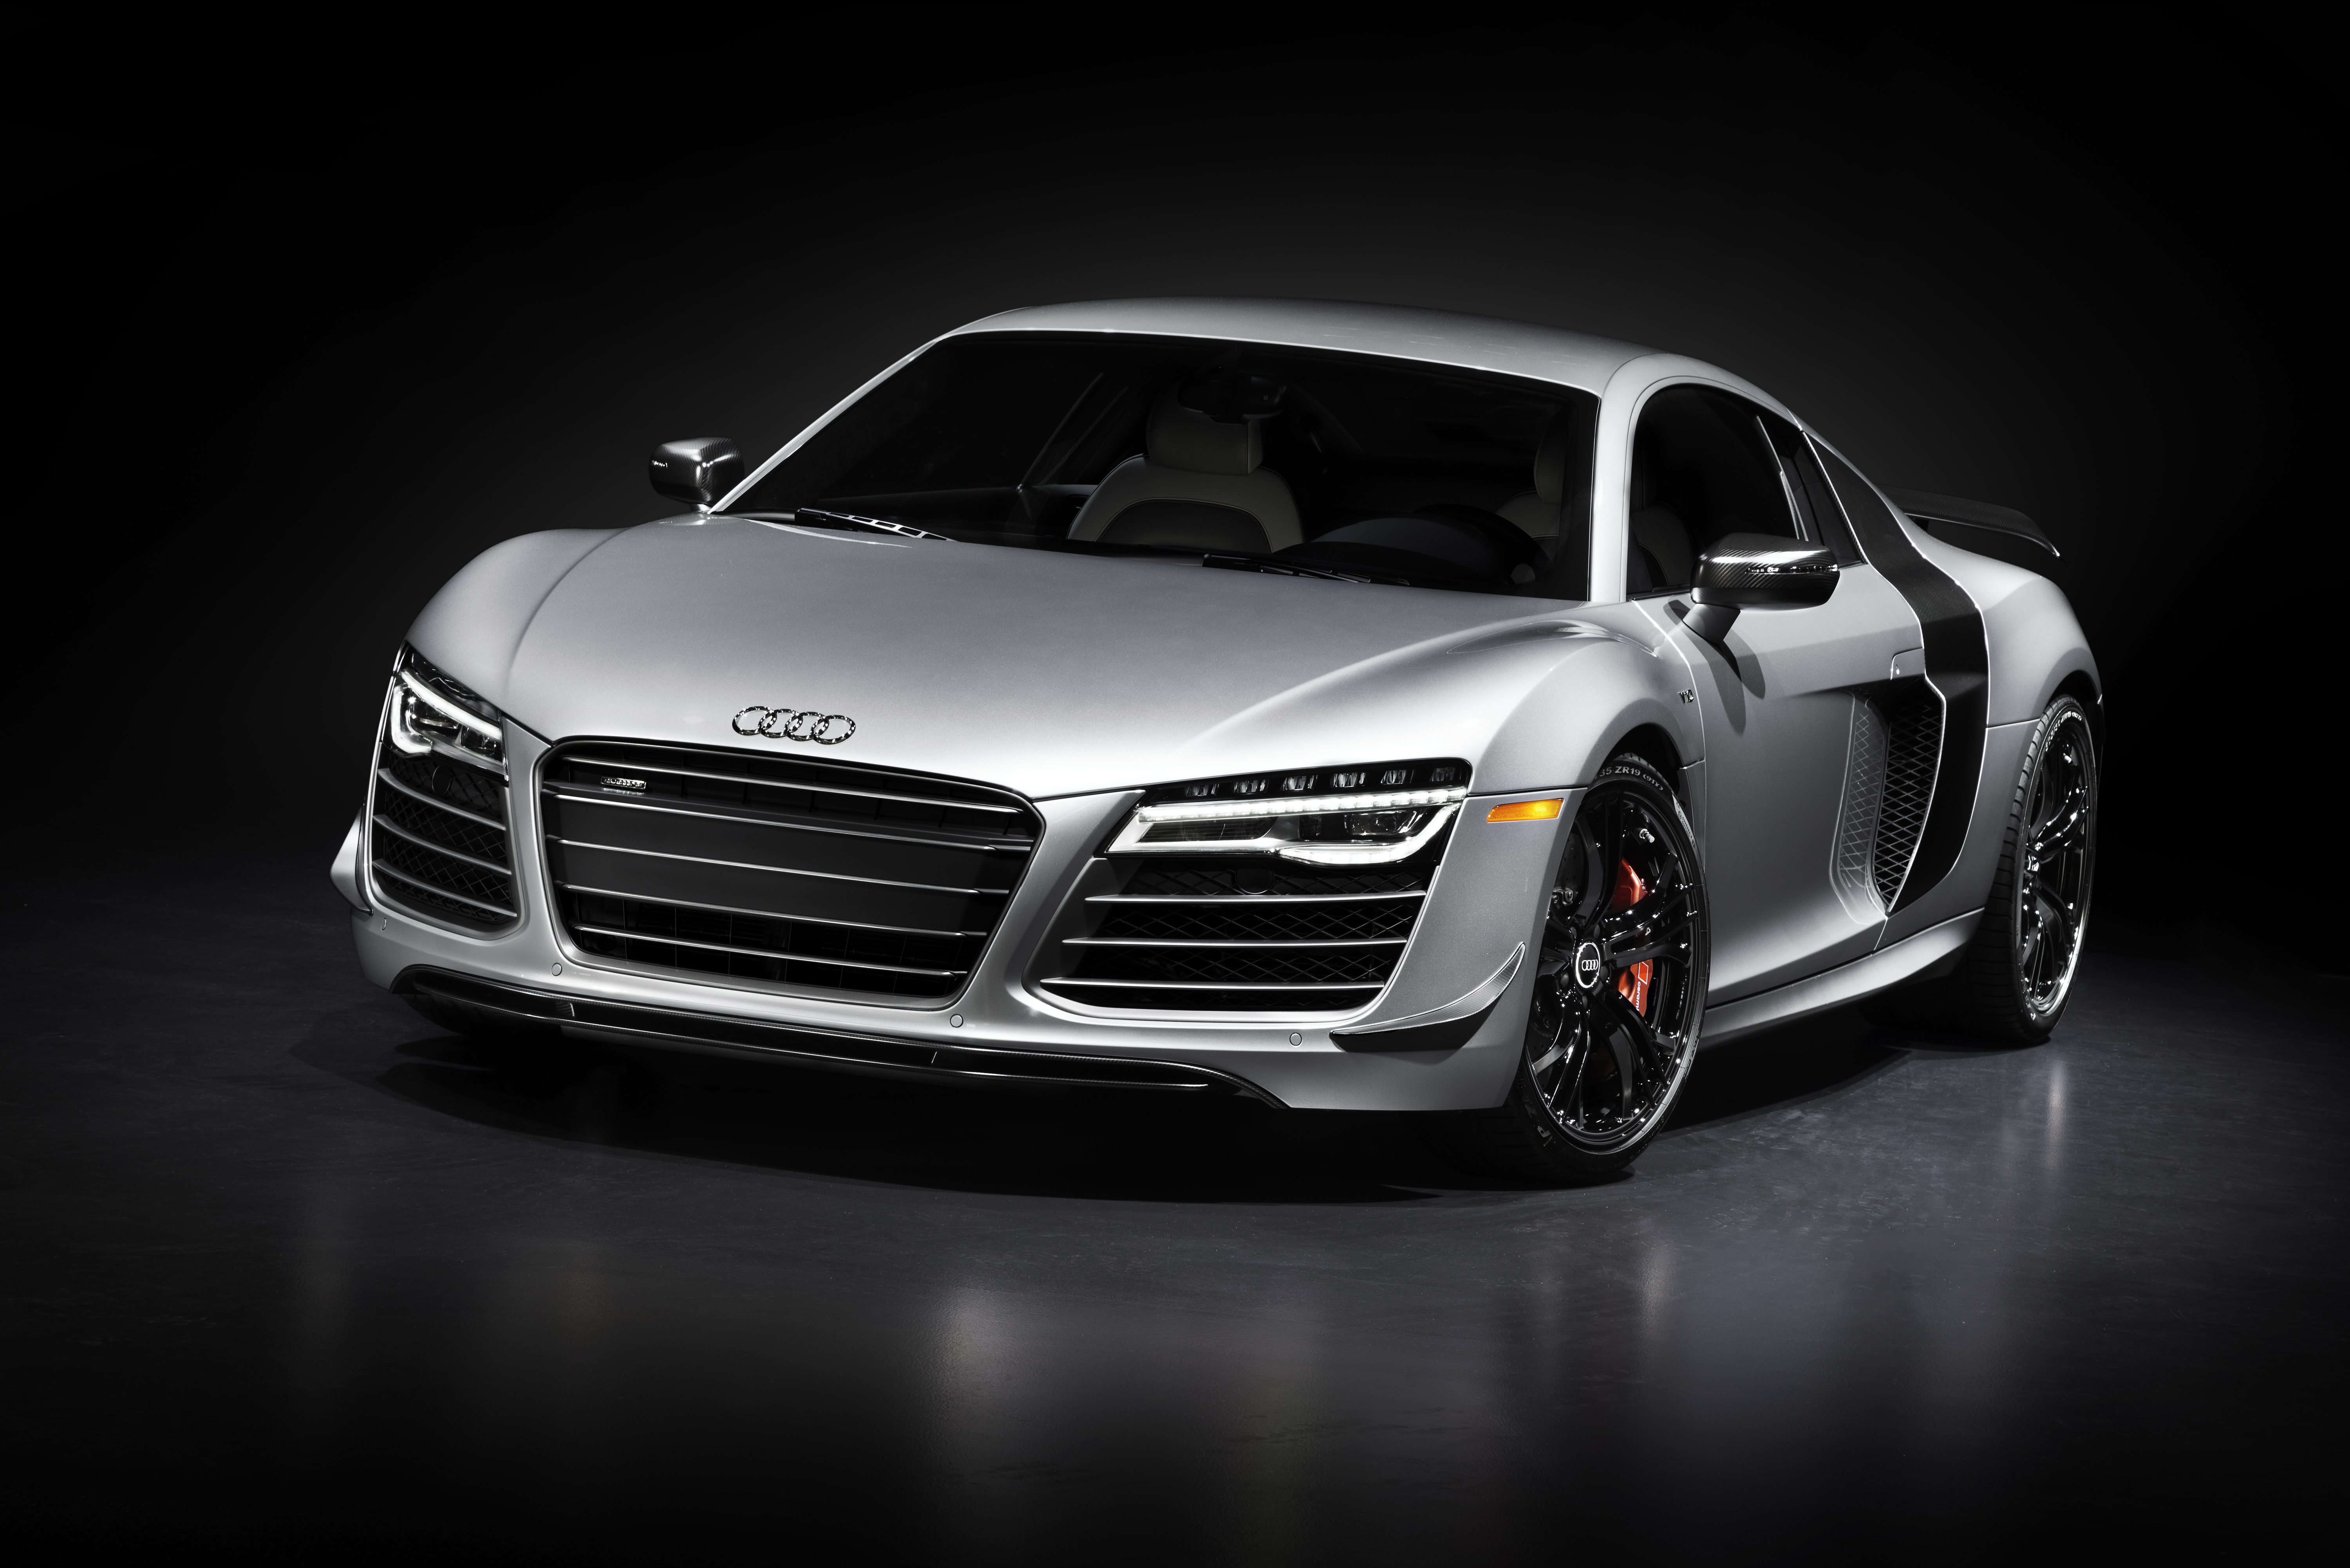 audi r8 competition is the most powerful audi production vehicle to. Black Bedroom Furniture Sets. Home Design Ideas